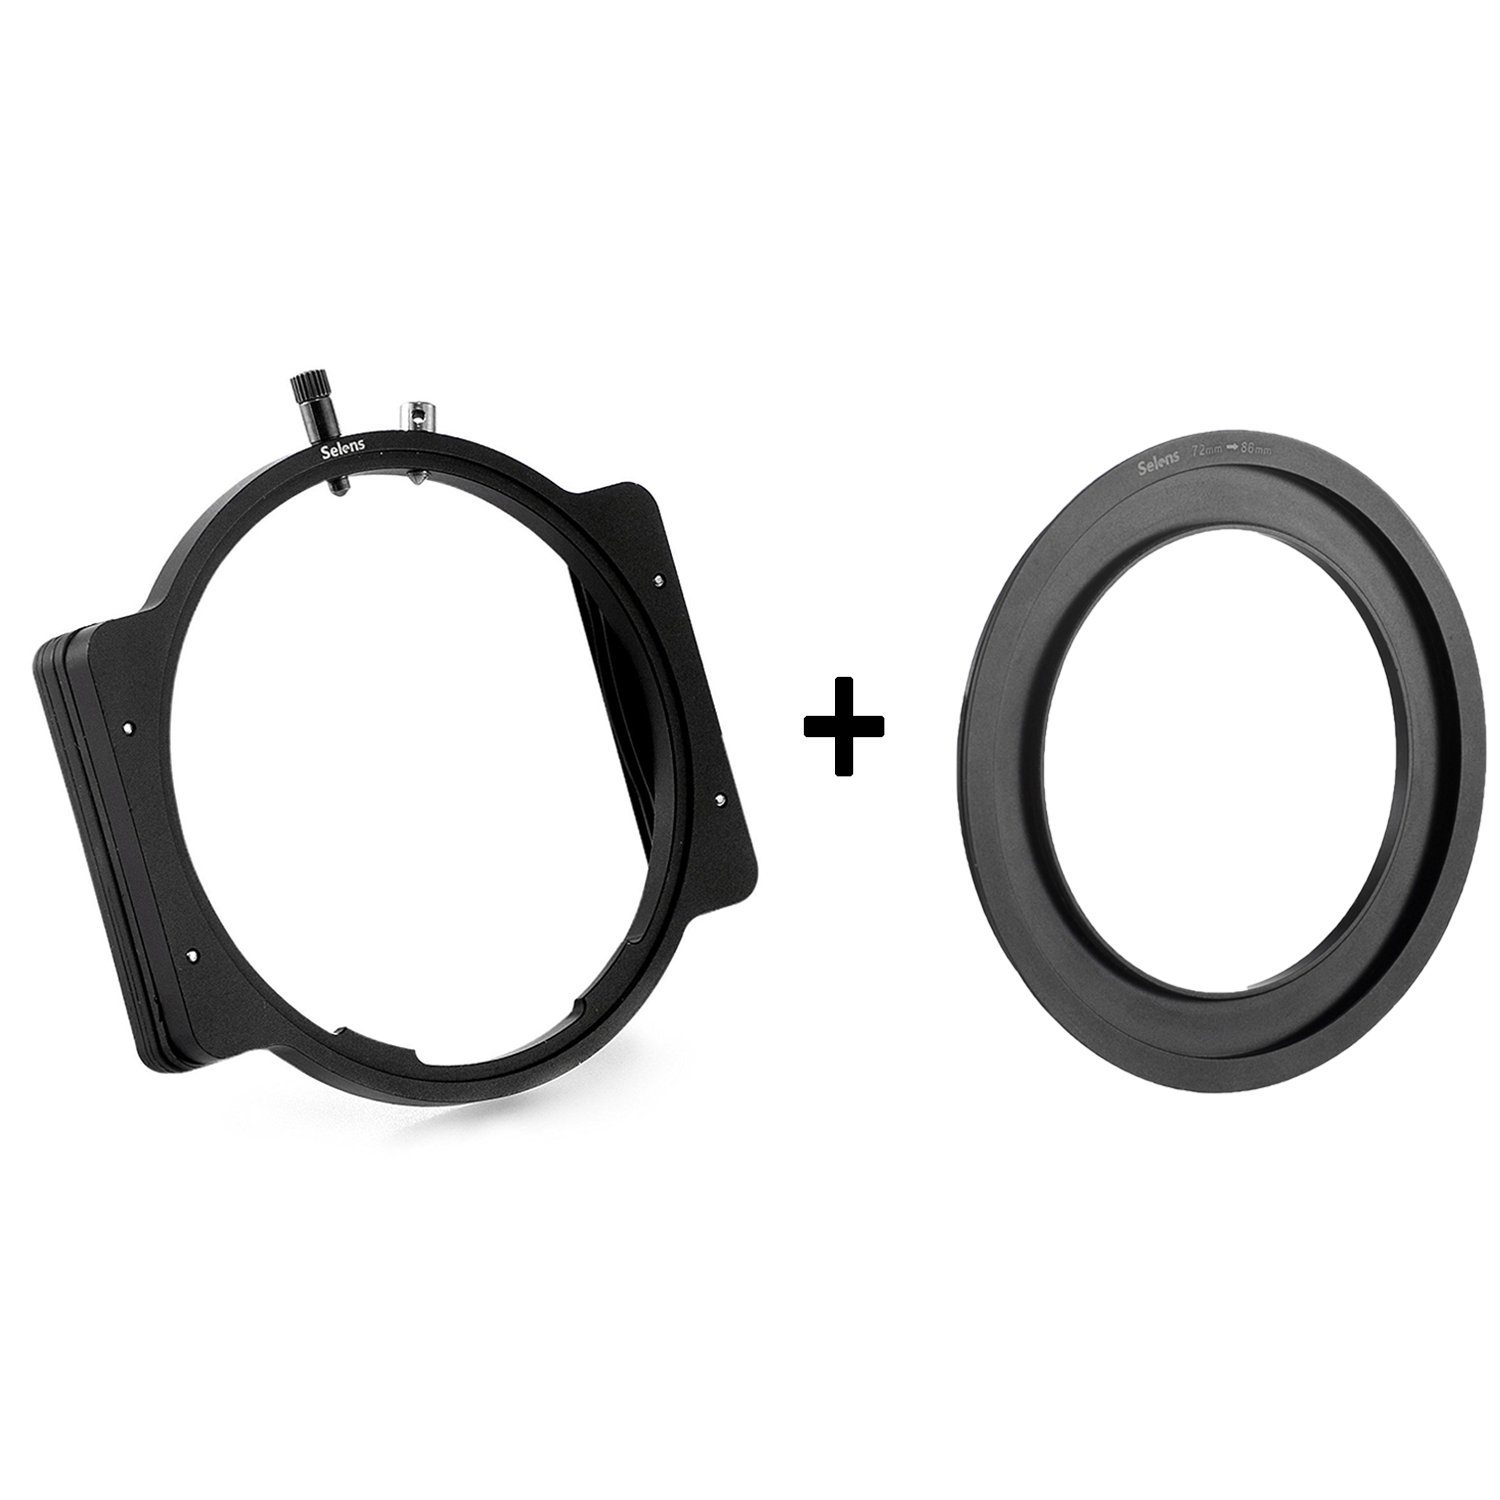 Selens Professional Metal Versatile Square Modular Filter Holder + Step-Up Ring Adapter 72-86mm for 4X4 4x5 4X5.65 Filter